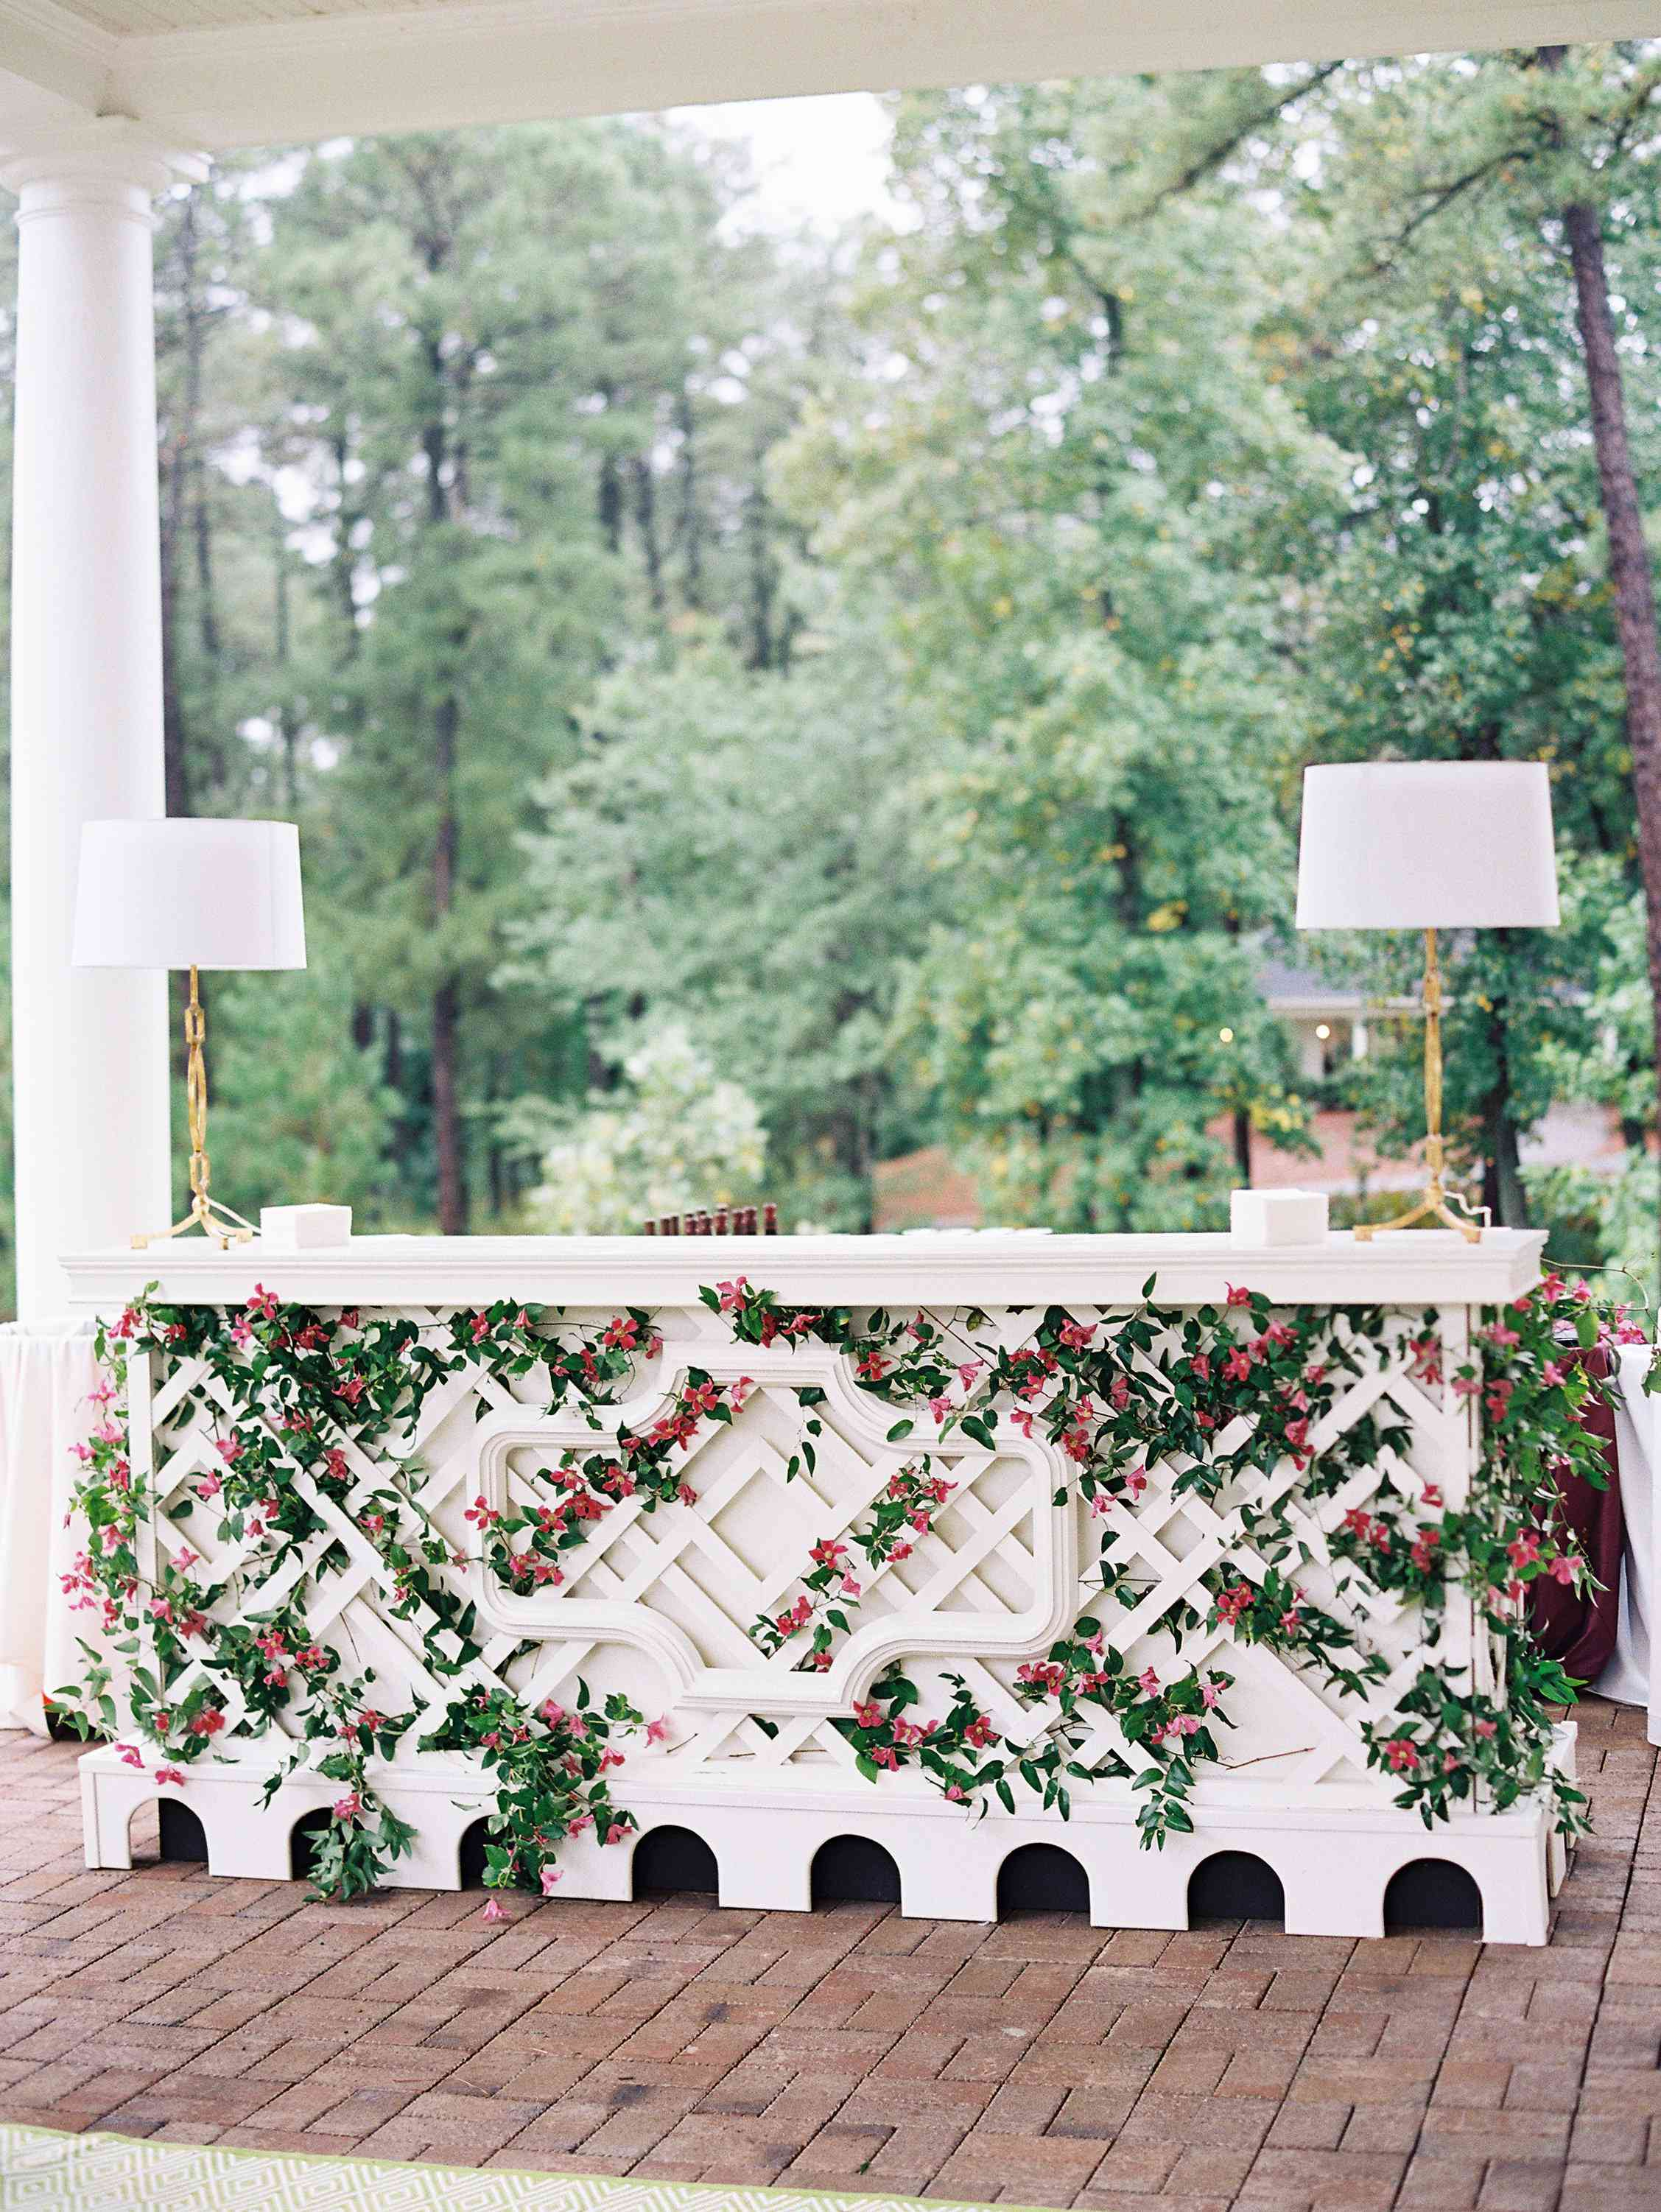 Trellis covered in floral vines with a lamp on either side